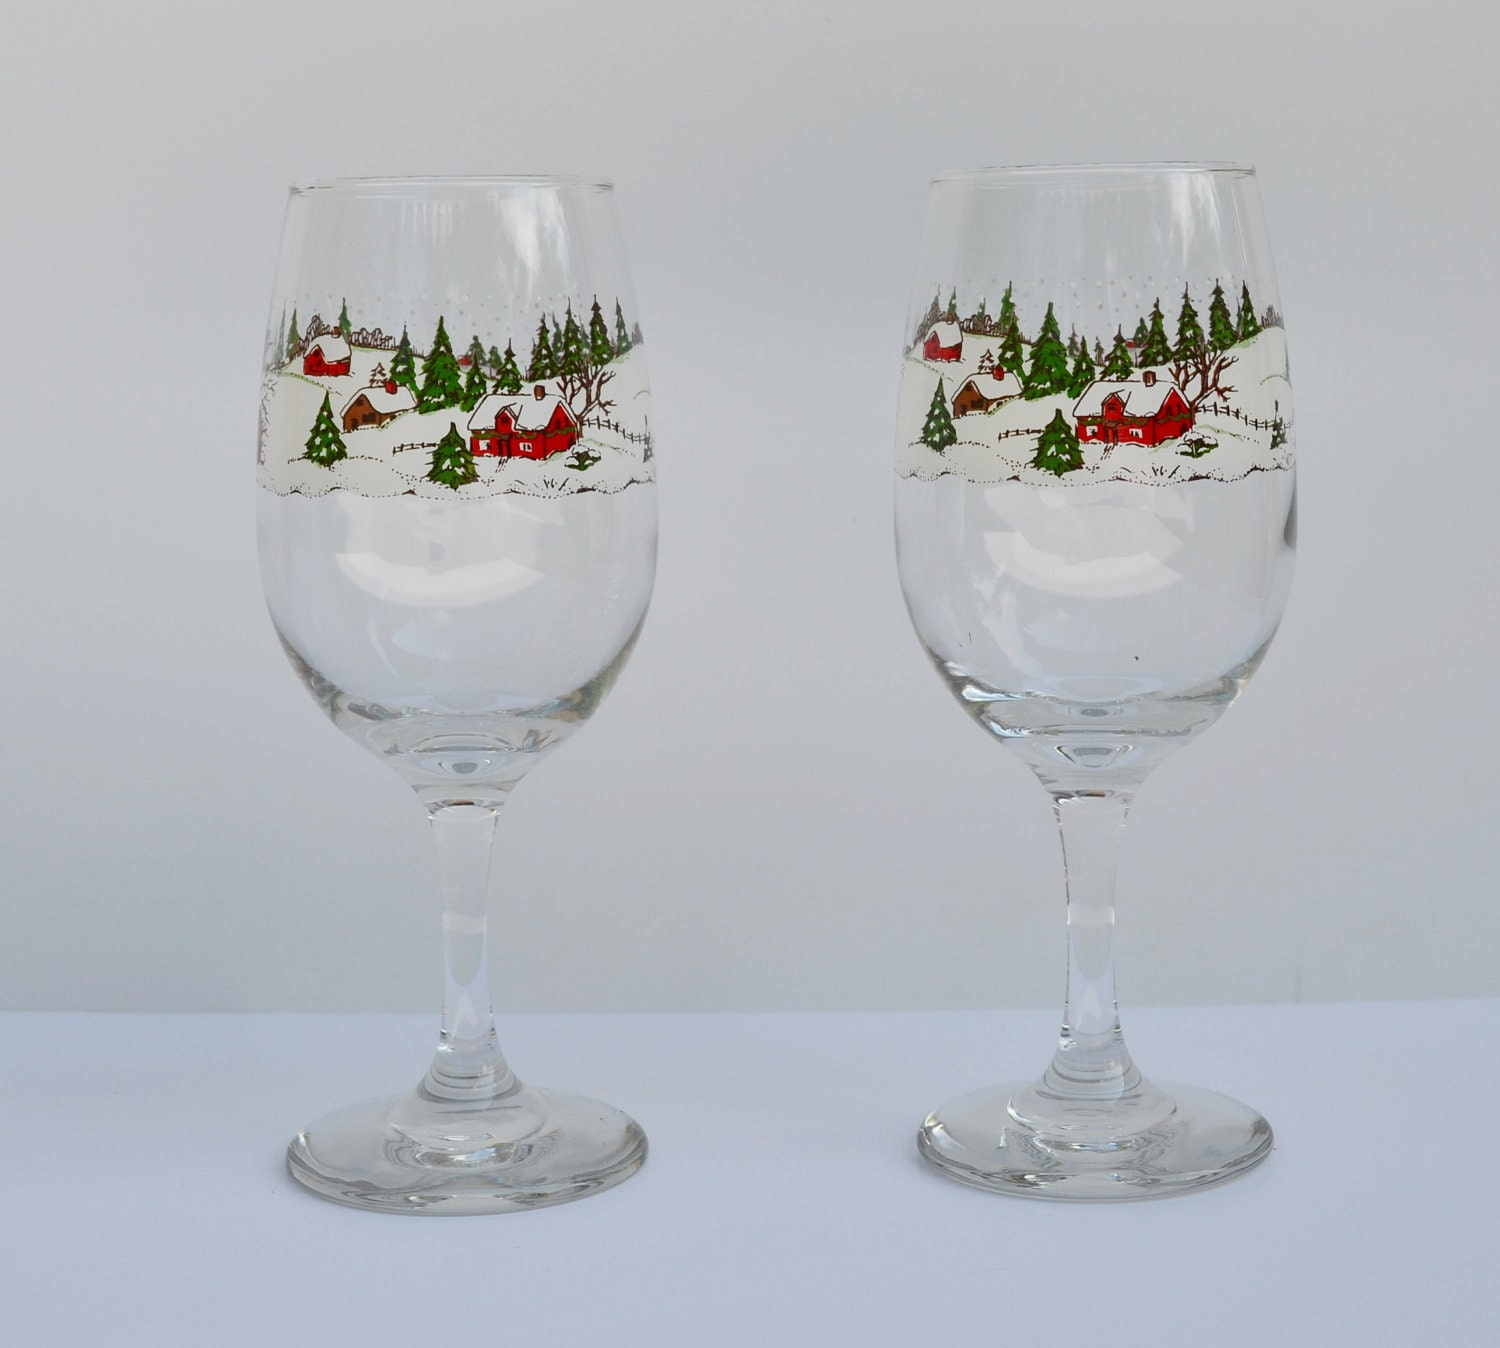 Christmas Tree Drinking Water: Vintage Christmas Wine Glasses Vintage Christmas Drinking